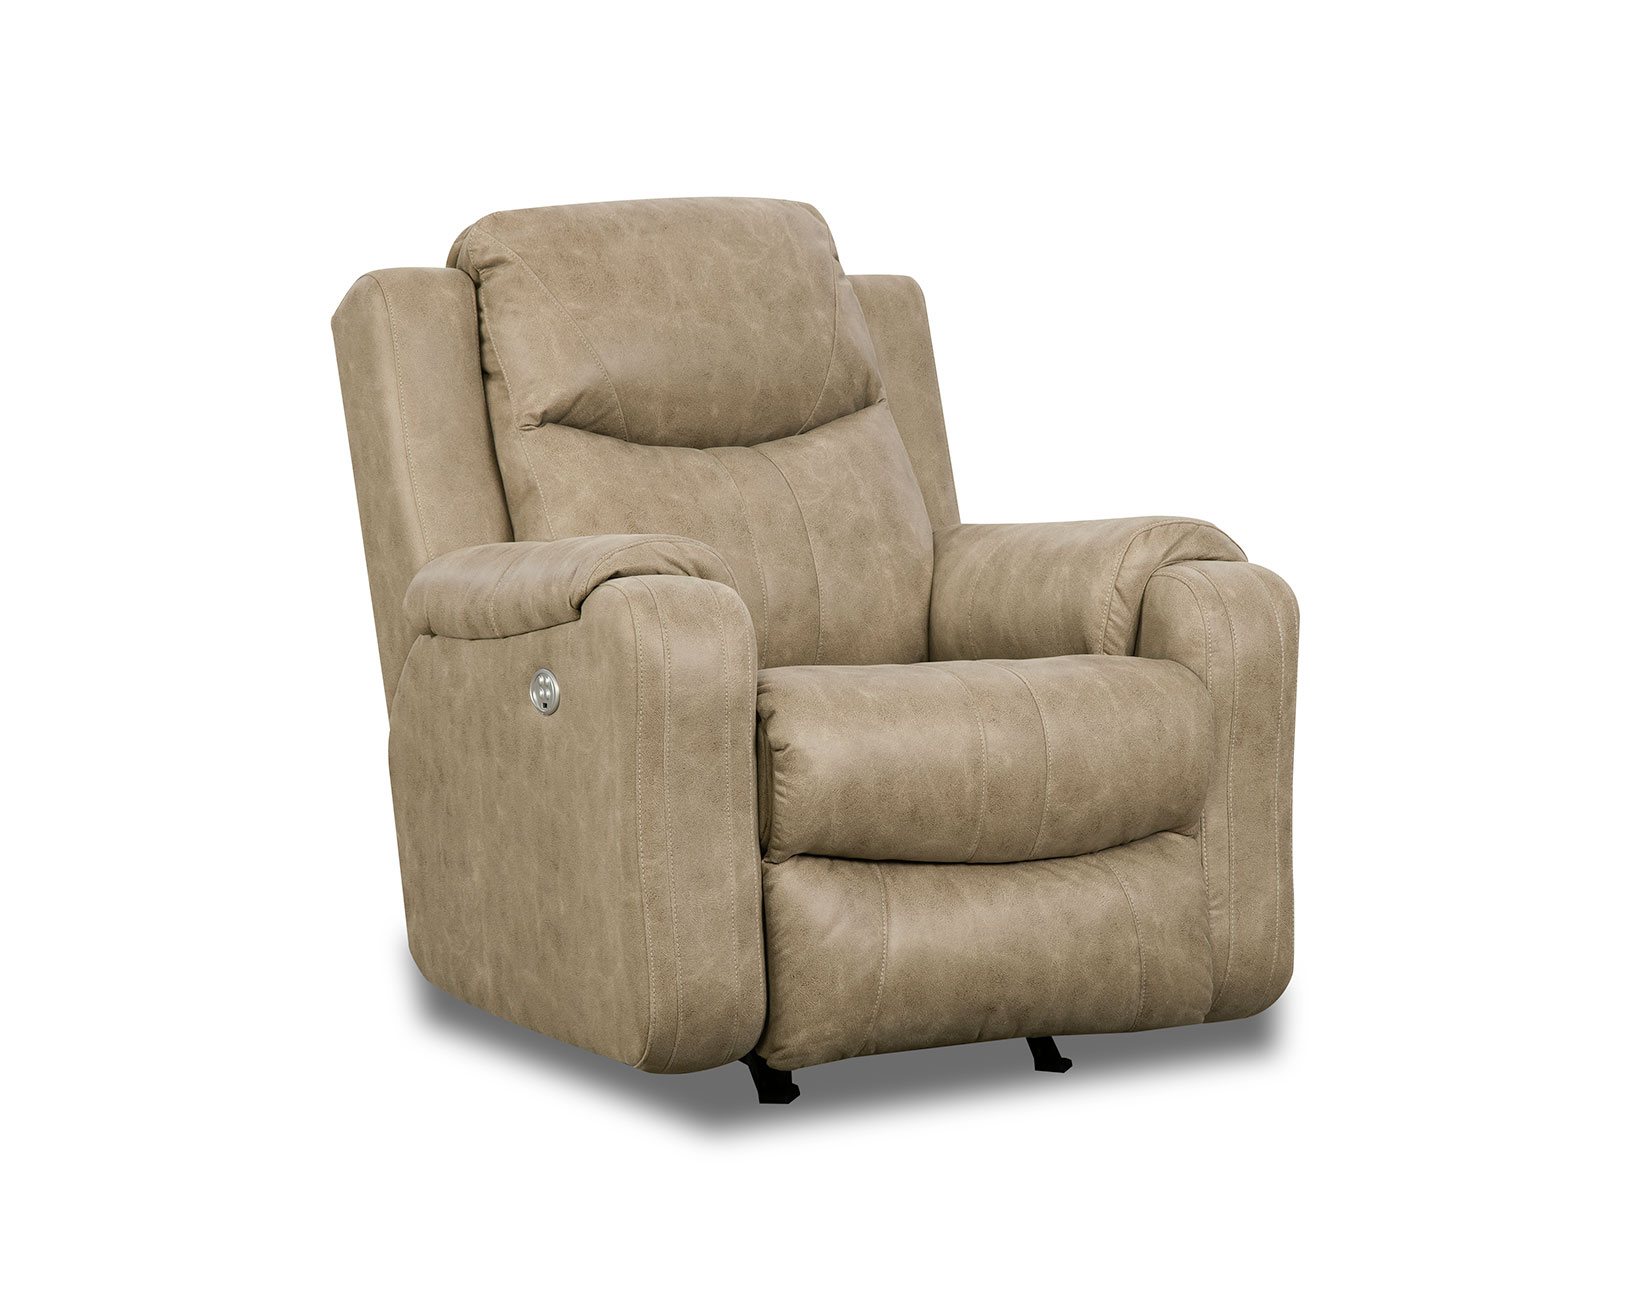 5881P-Marvel-in-186-16-Passion-Vintage-recliner-swp-PU_web